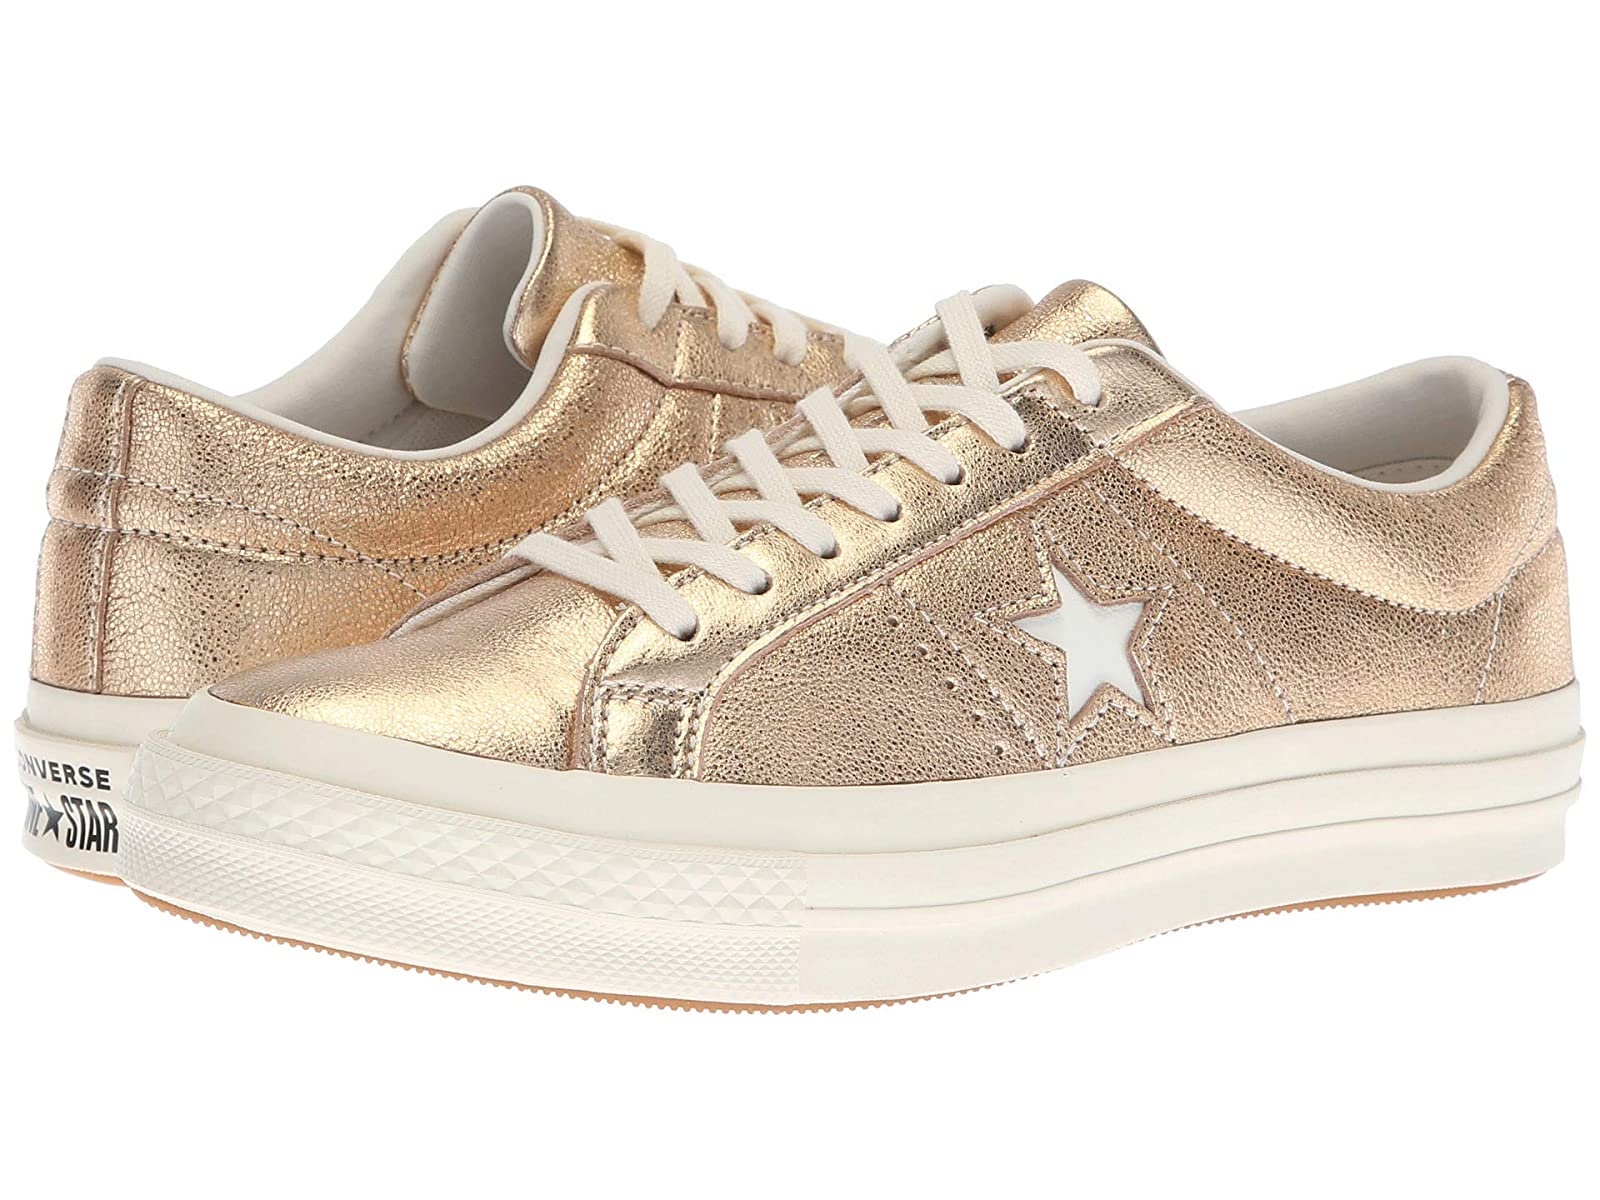 Converse One Star Heavy Metallic Leather OxAtmospheric grades have affordable shoes